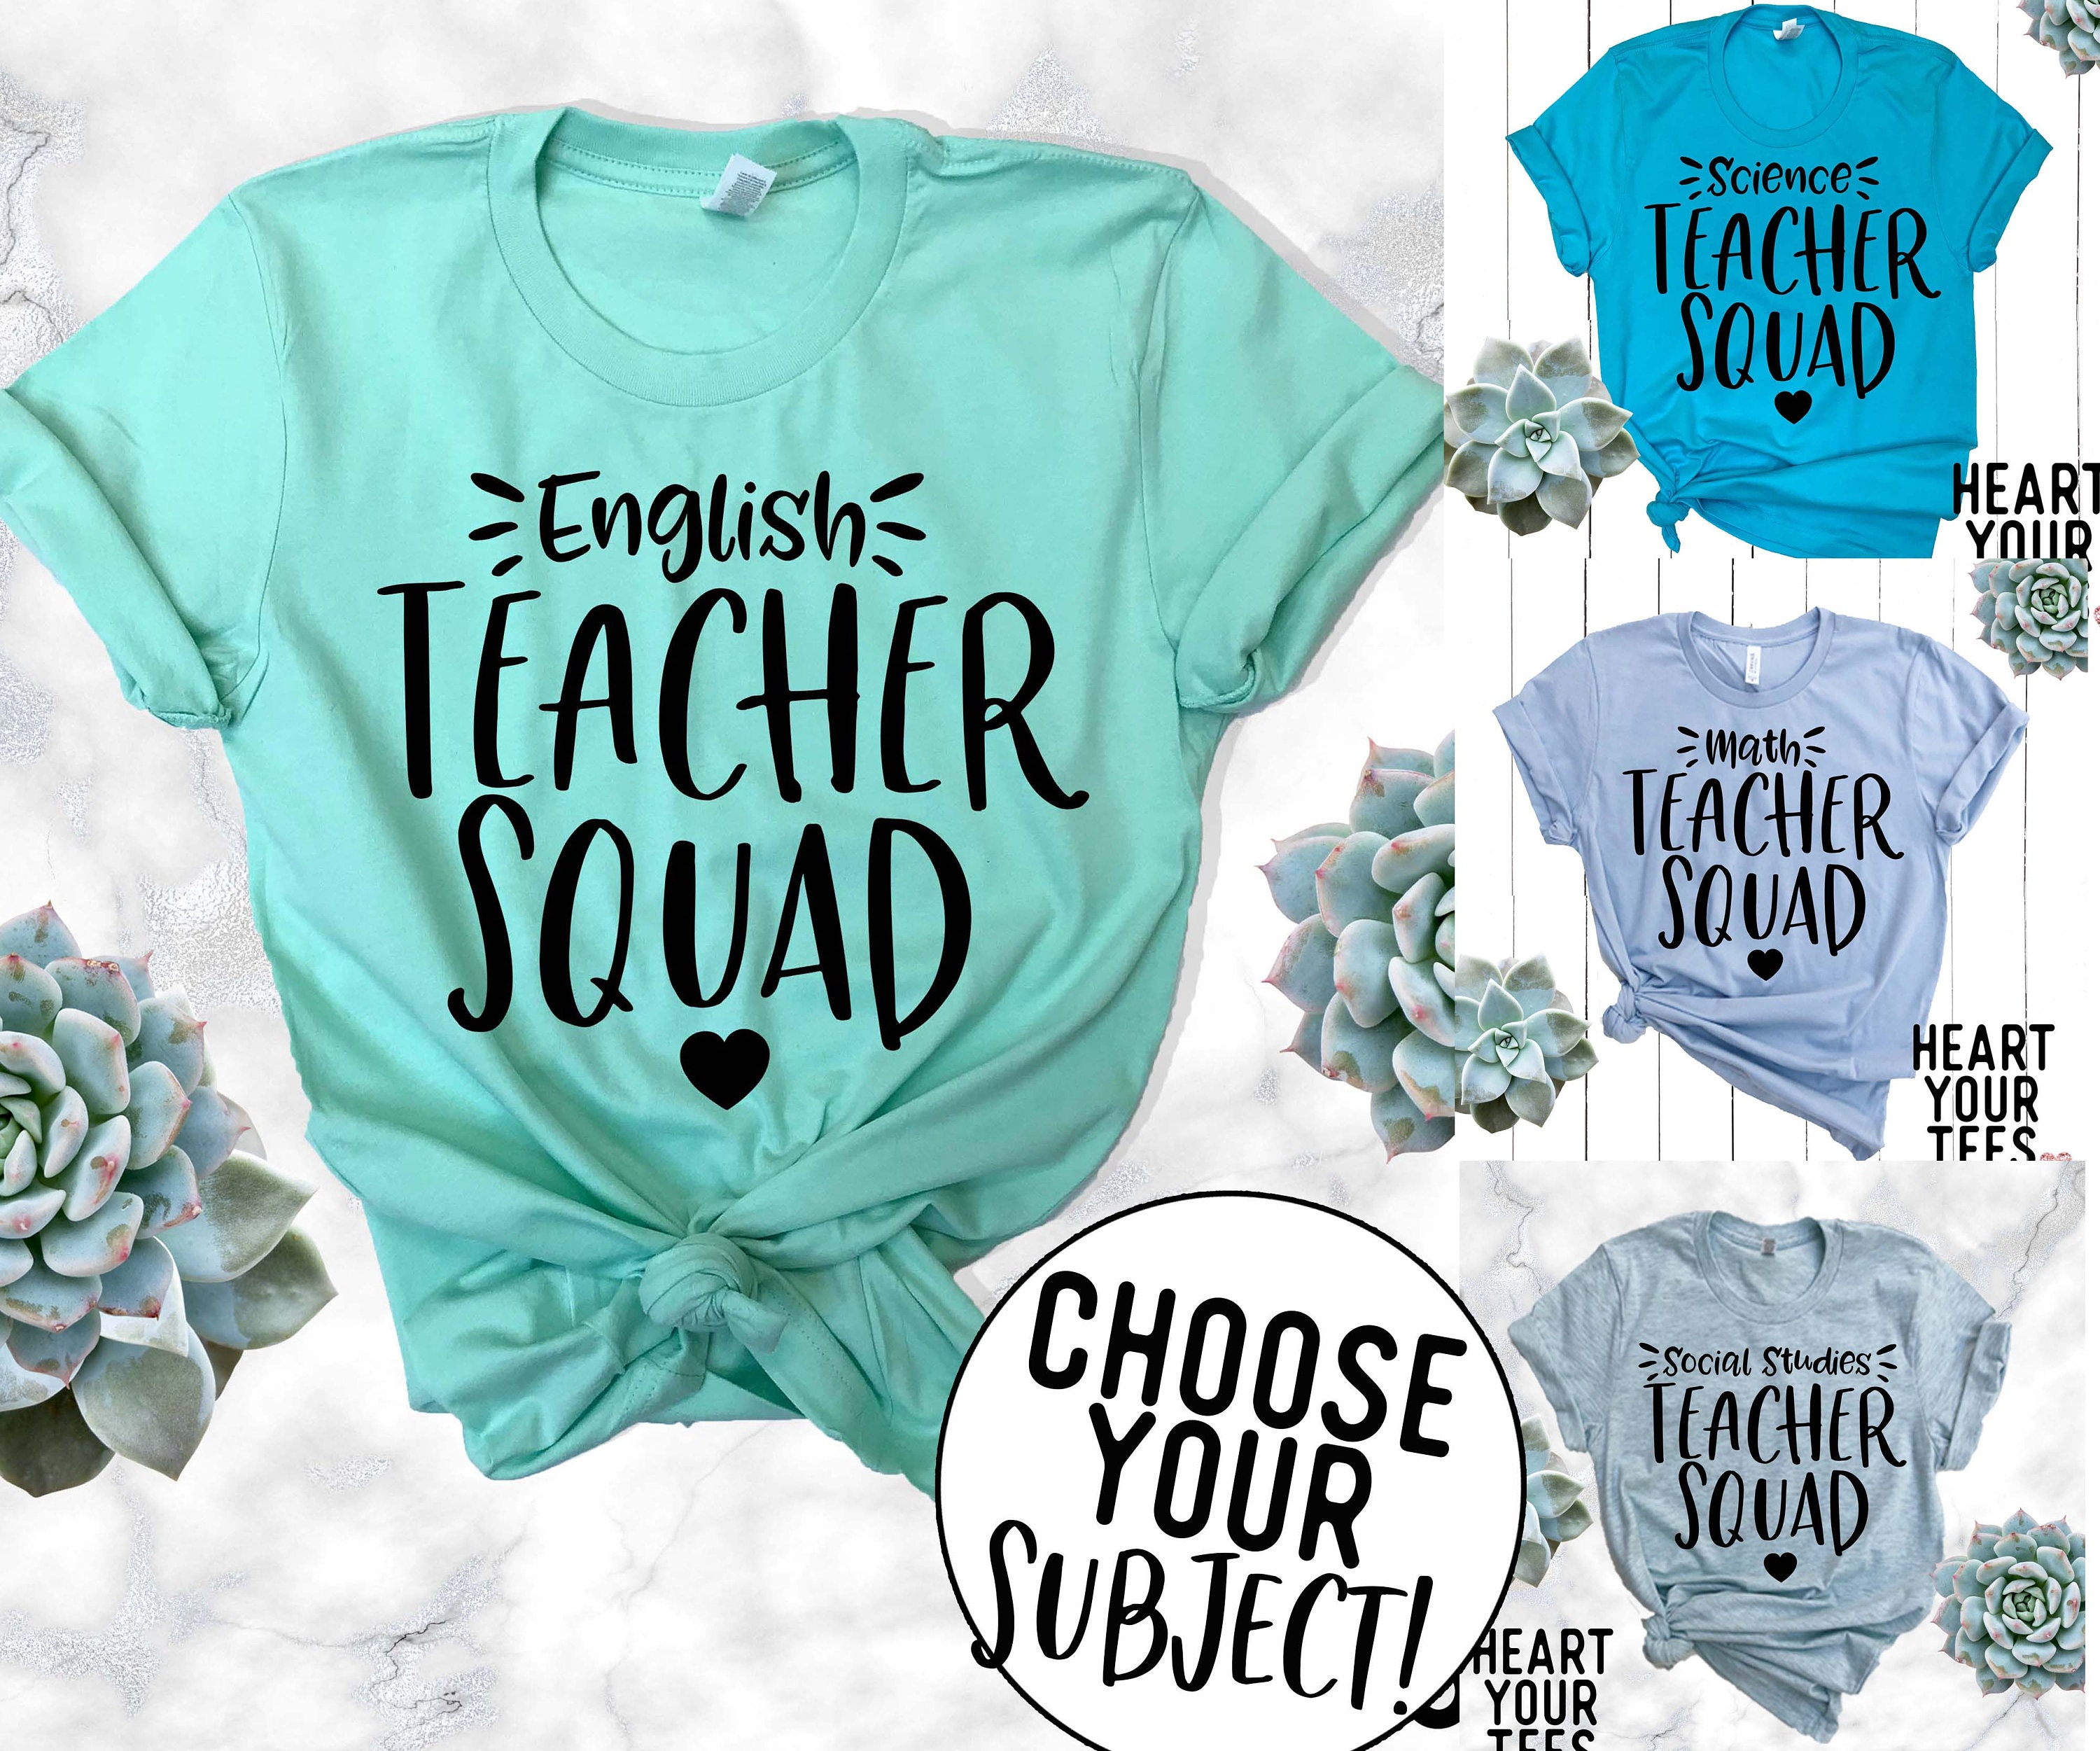 Teacher Shirt, Teacher Group Shirts, Custom Teacher Tee, Personalized  Teacher Shirt, Teacher Field Trip Shirts, Teacher Conference Tees